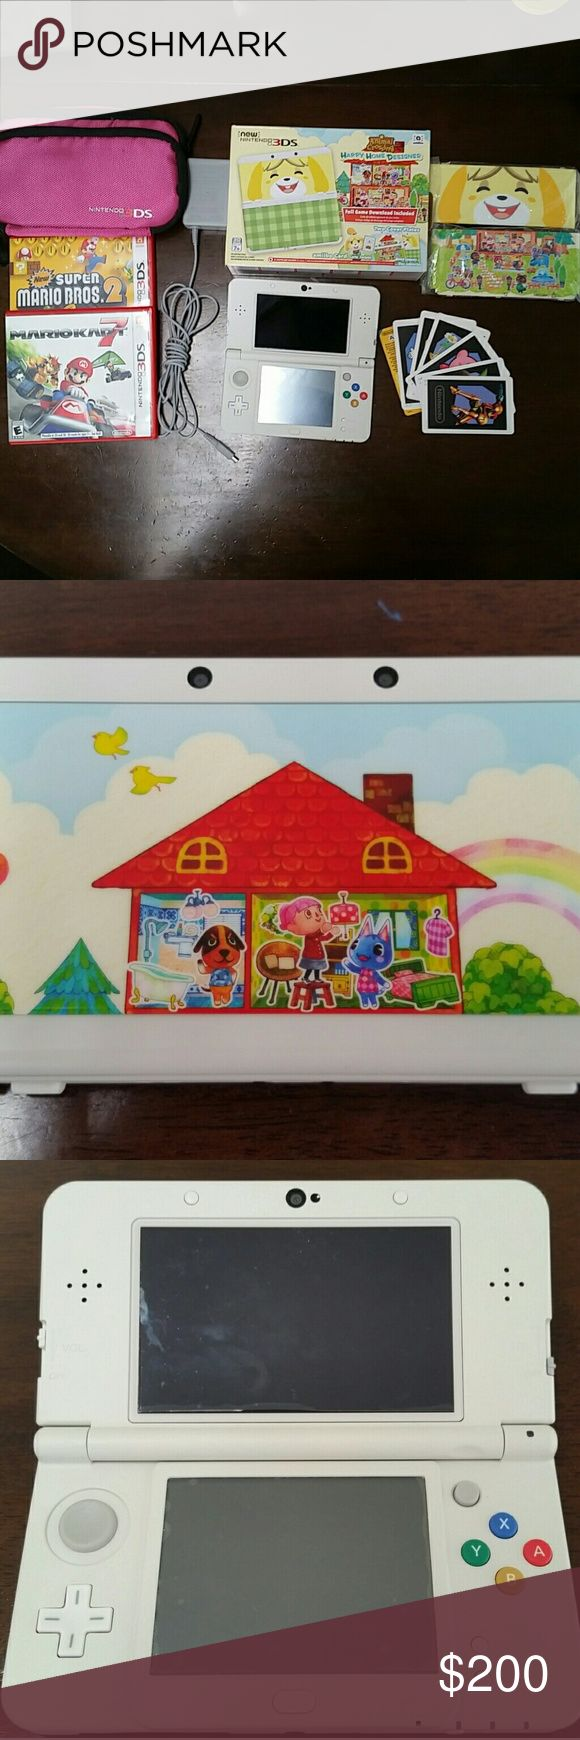 New Nintendo 3DS Animal Crossing: Happy Home Happy Home Designer White Handheld System  Like New. It is a used system so the happy home designer game is NOT included. I already redeemed the code. I am including a charging cable with it (the system does not normally come with one...) also a pink carrying pouch.The system comes with both sets of original happy home designer faceplates. Original packaging. Games: Gardening Mama, Cake Mania, Animal Doctor, Movie Star, Mario Kart 7, New Super…